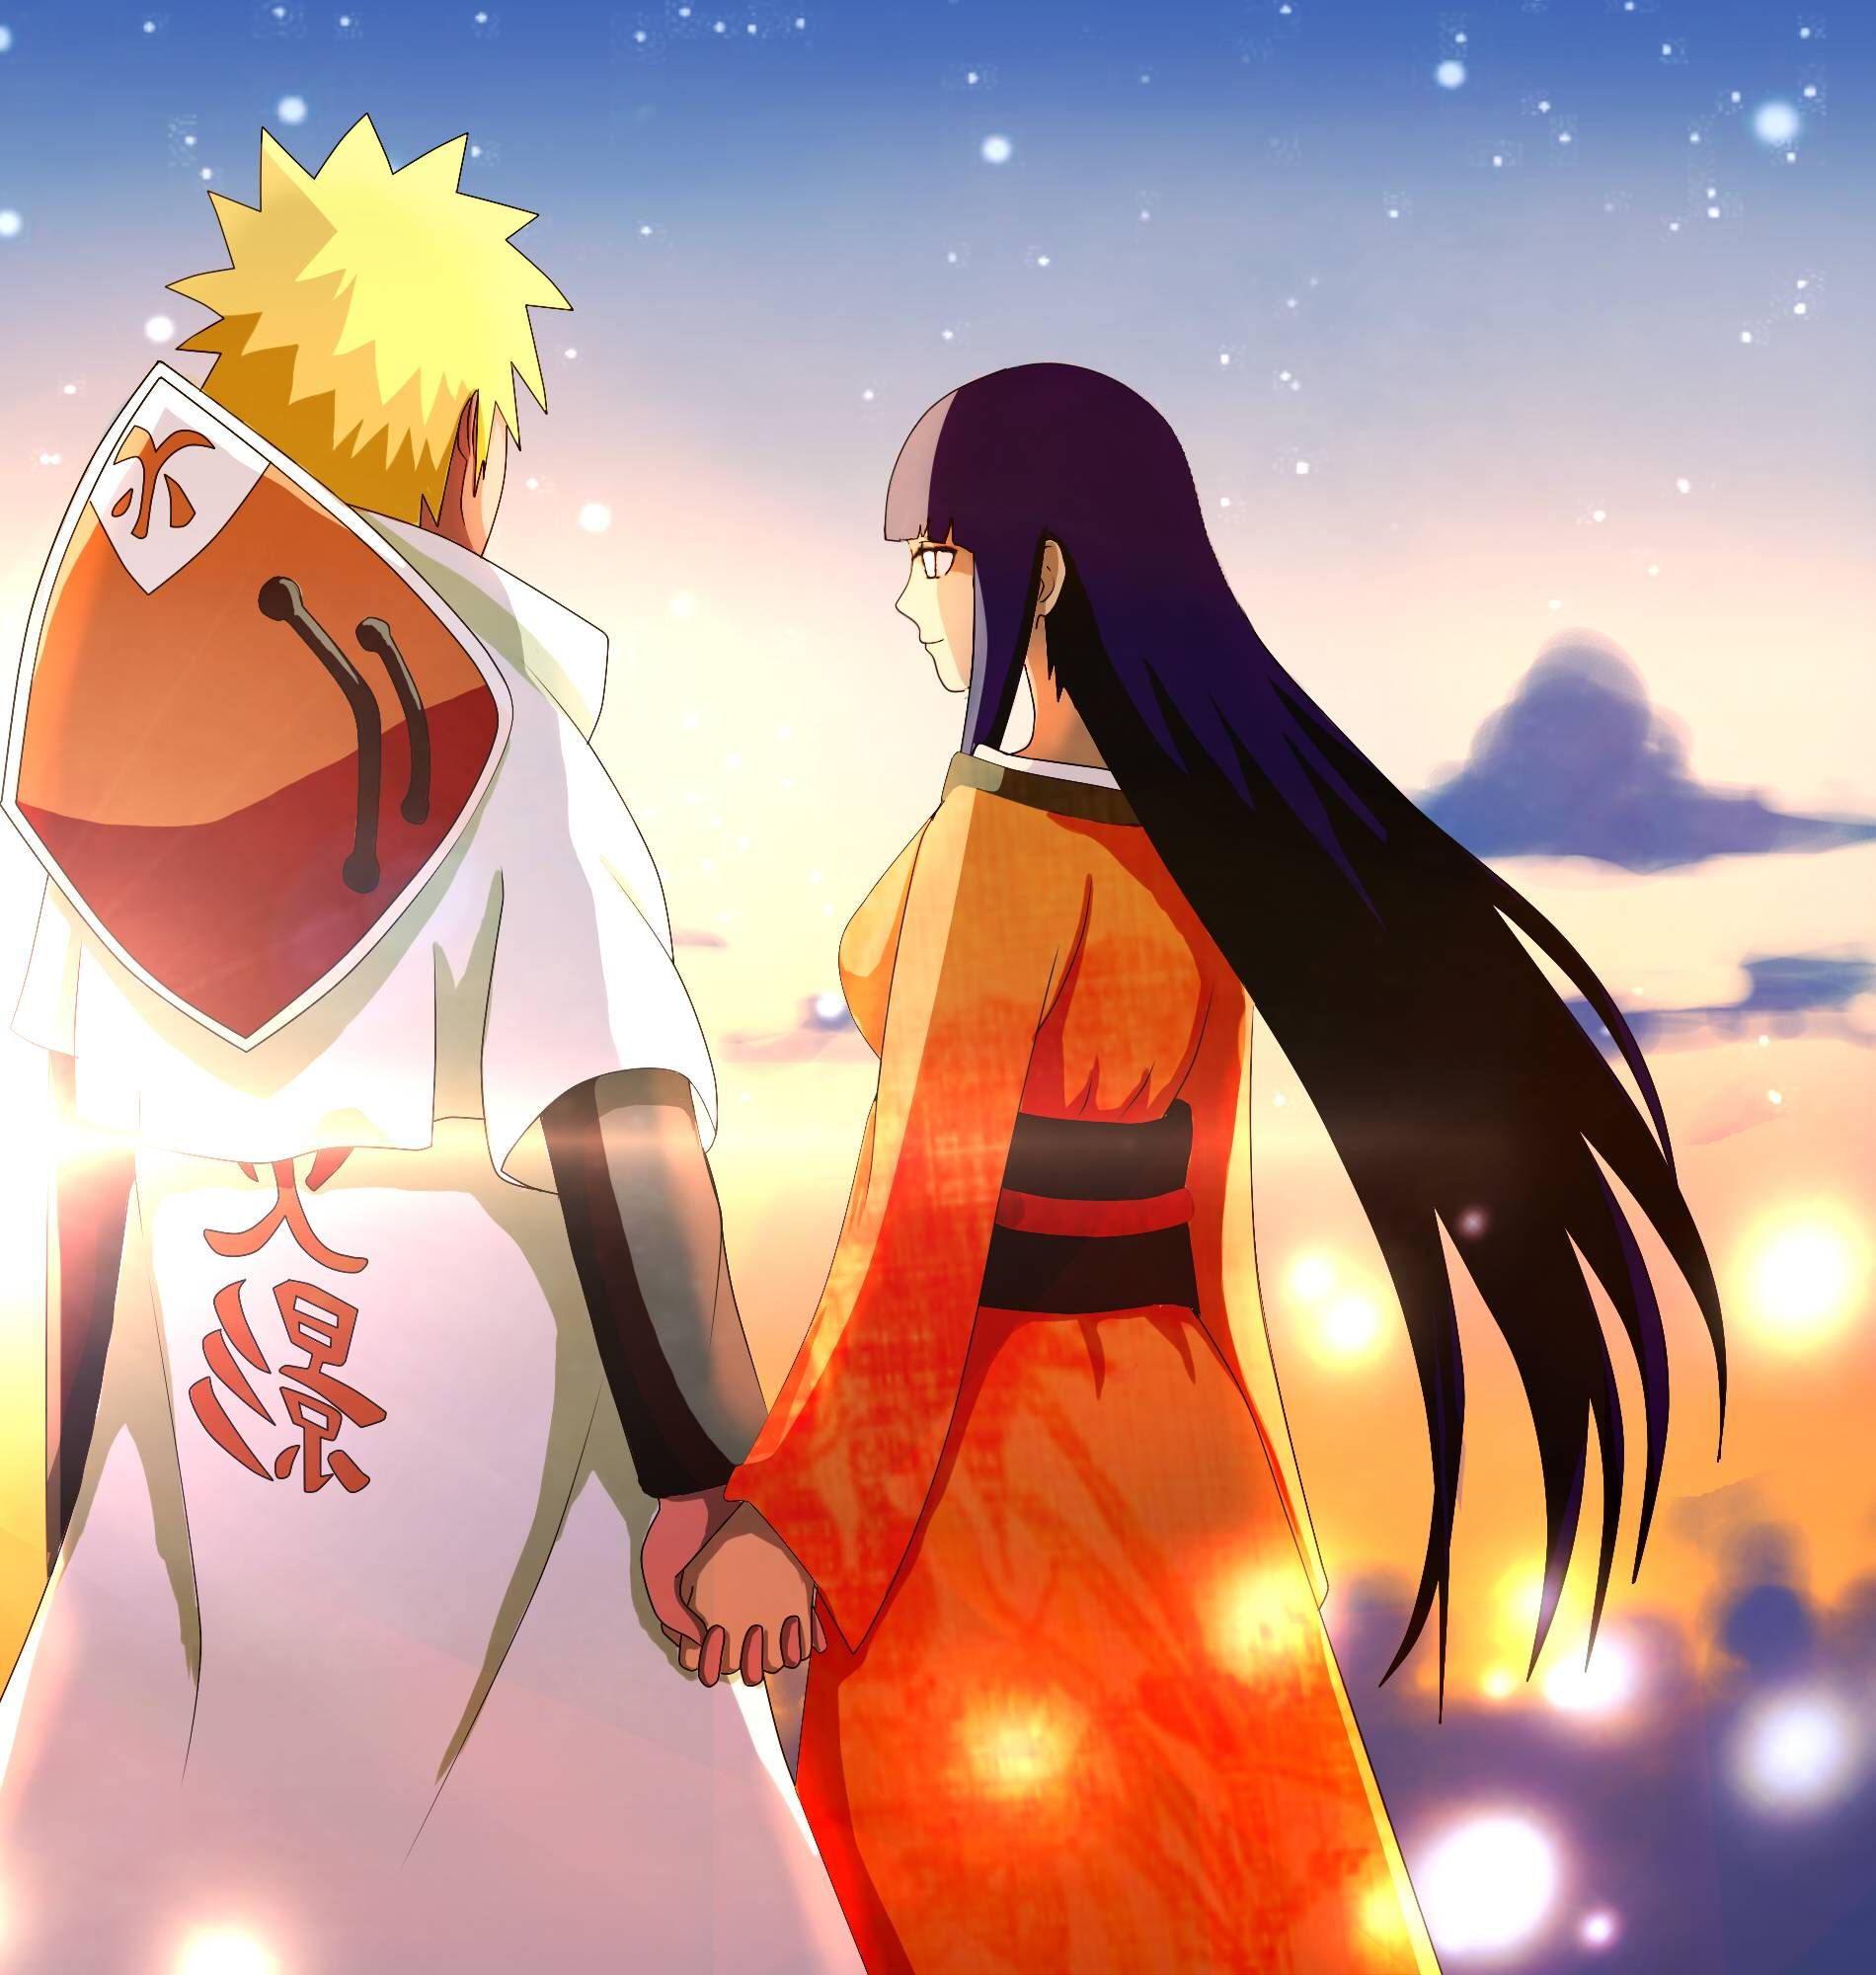 Anime Wallpaper Android Naruto Mywallpapers Site In 2020 Wallpaper Naruto 3d Hd Anime Wallpapers Naruto Wallpaper